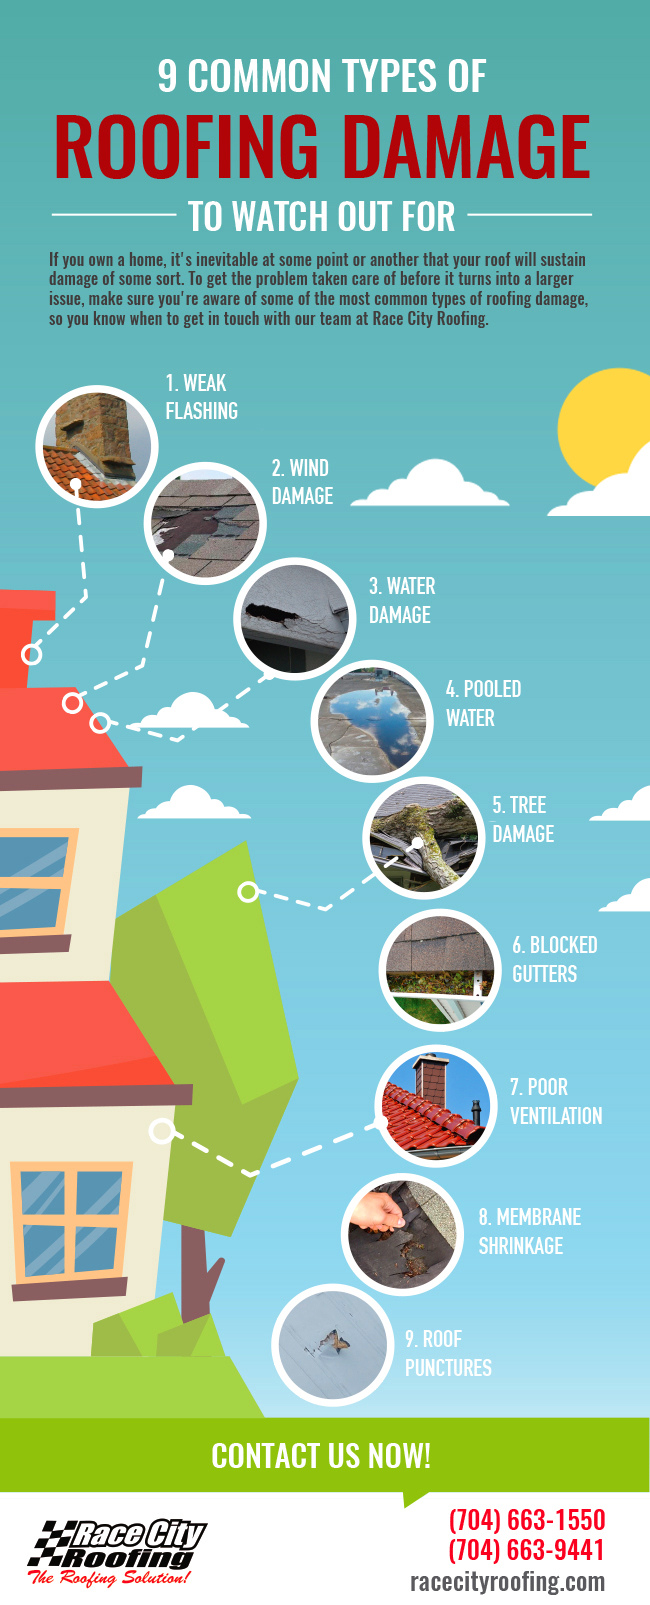 9 common types of roofing damage